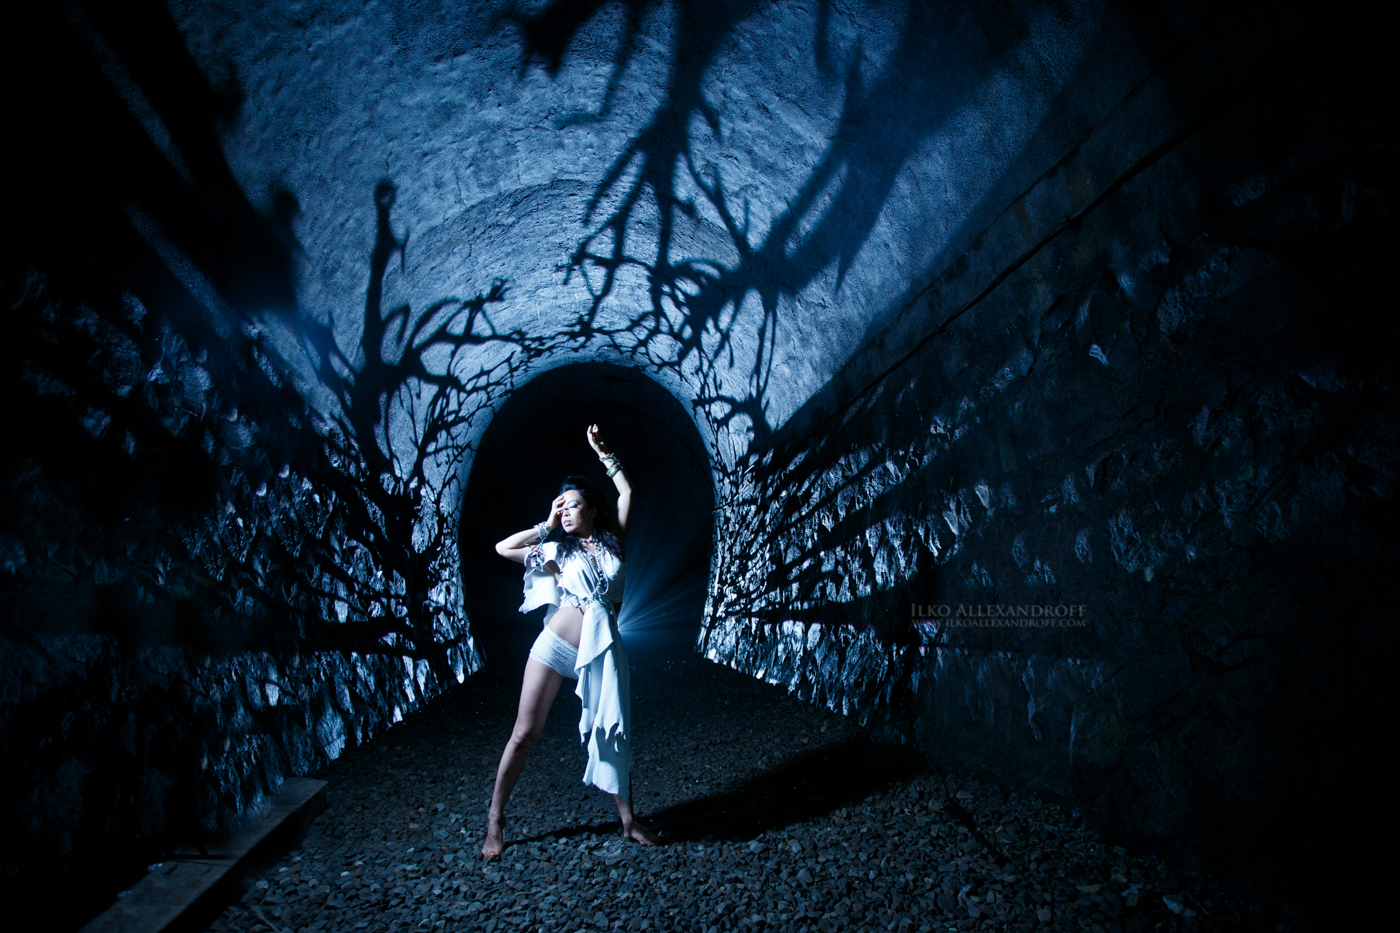 Haunted tunnel, Strobist article using the light blaster